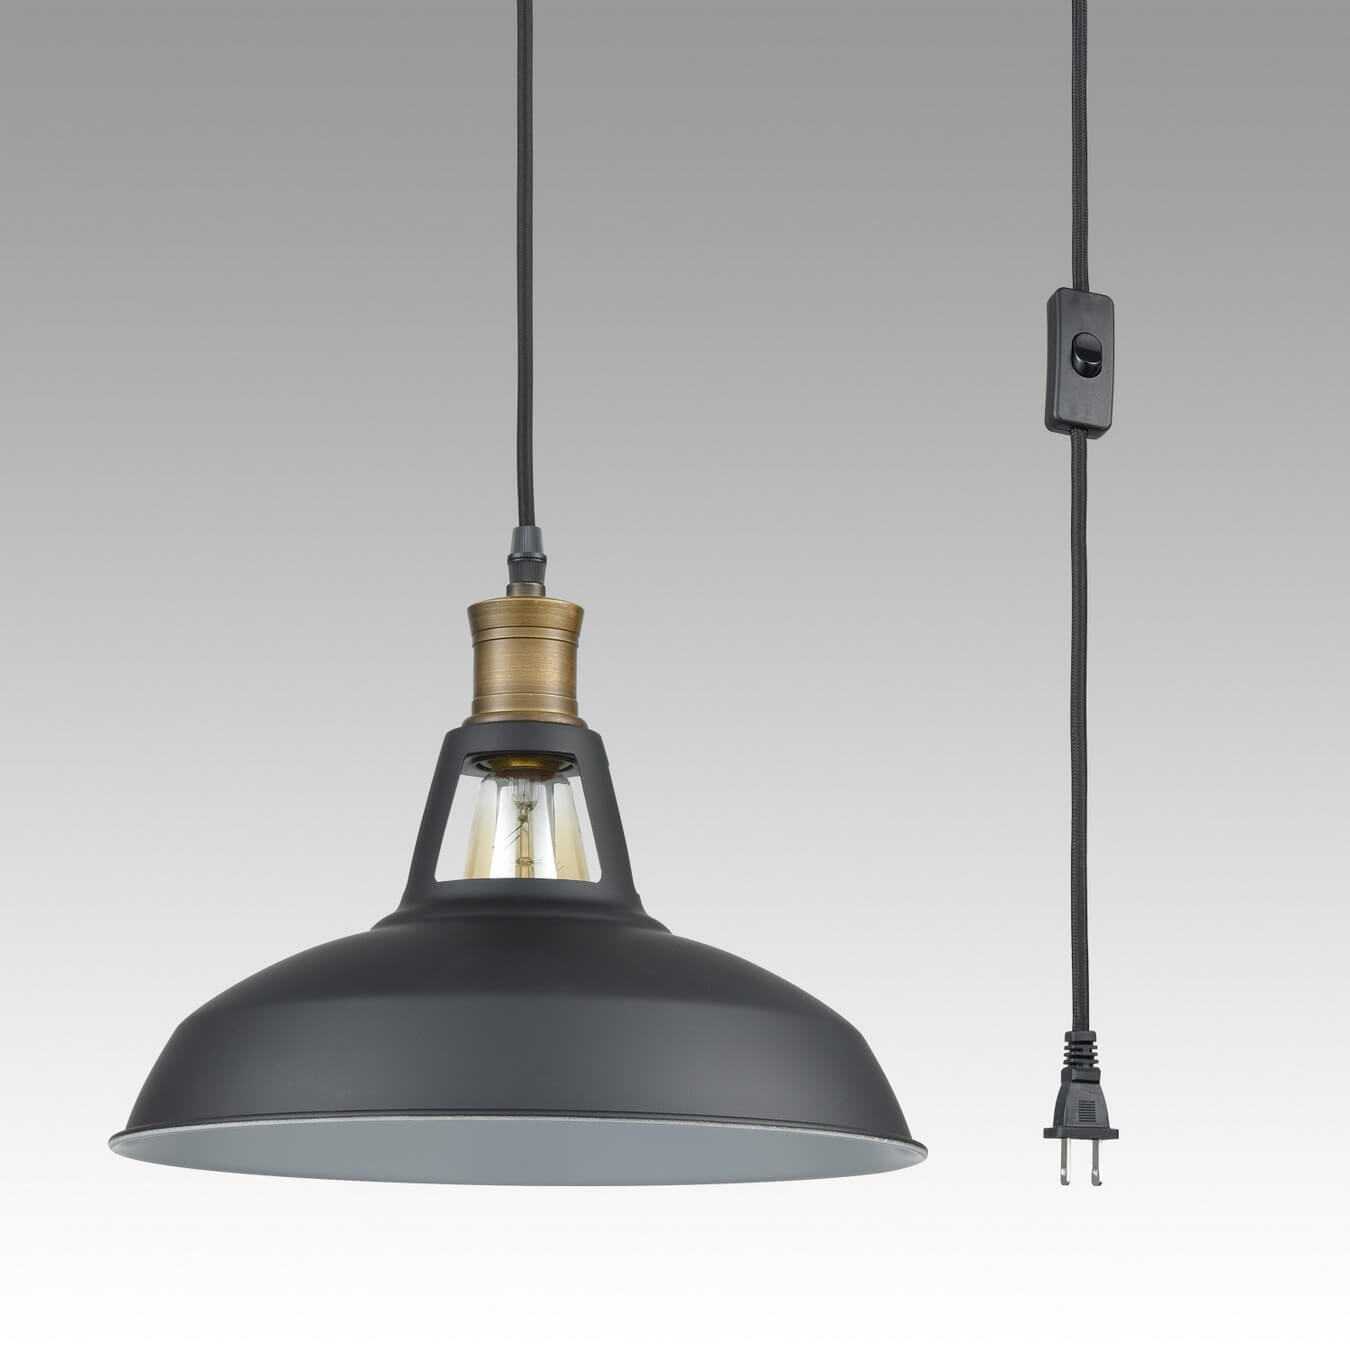 Industrial Plug in Pendant Light Barn Shape with On/Off Switch